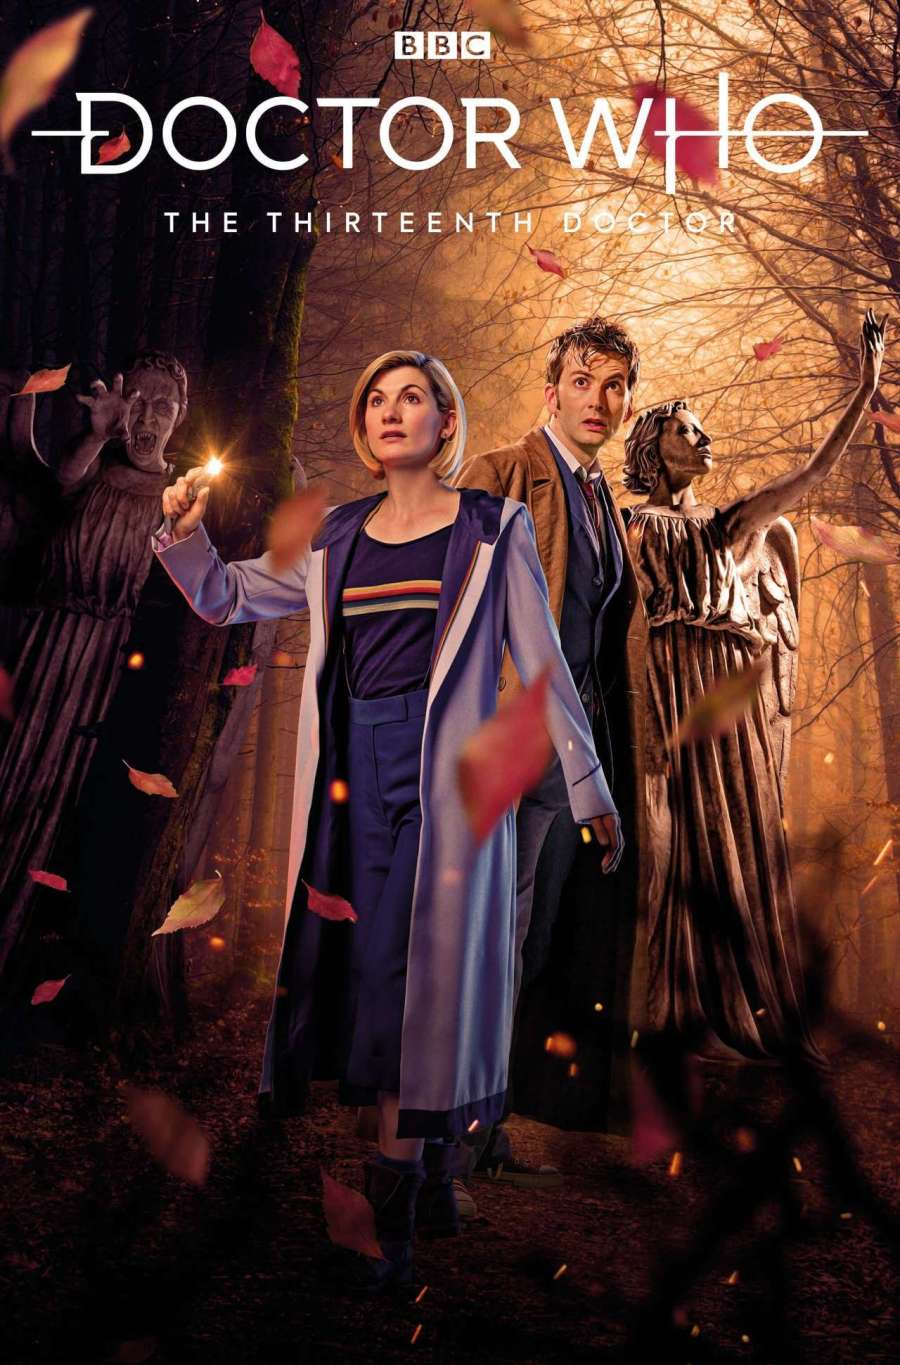 Doctor Who The Thirteenth Doctor Season Two #1